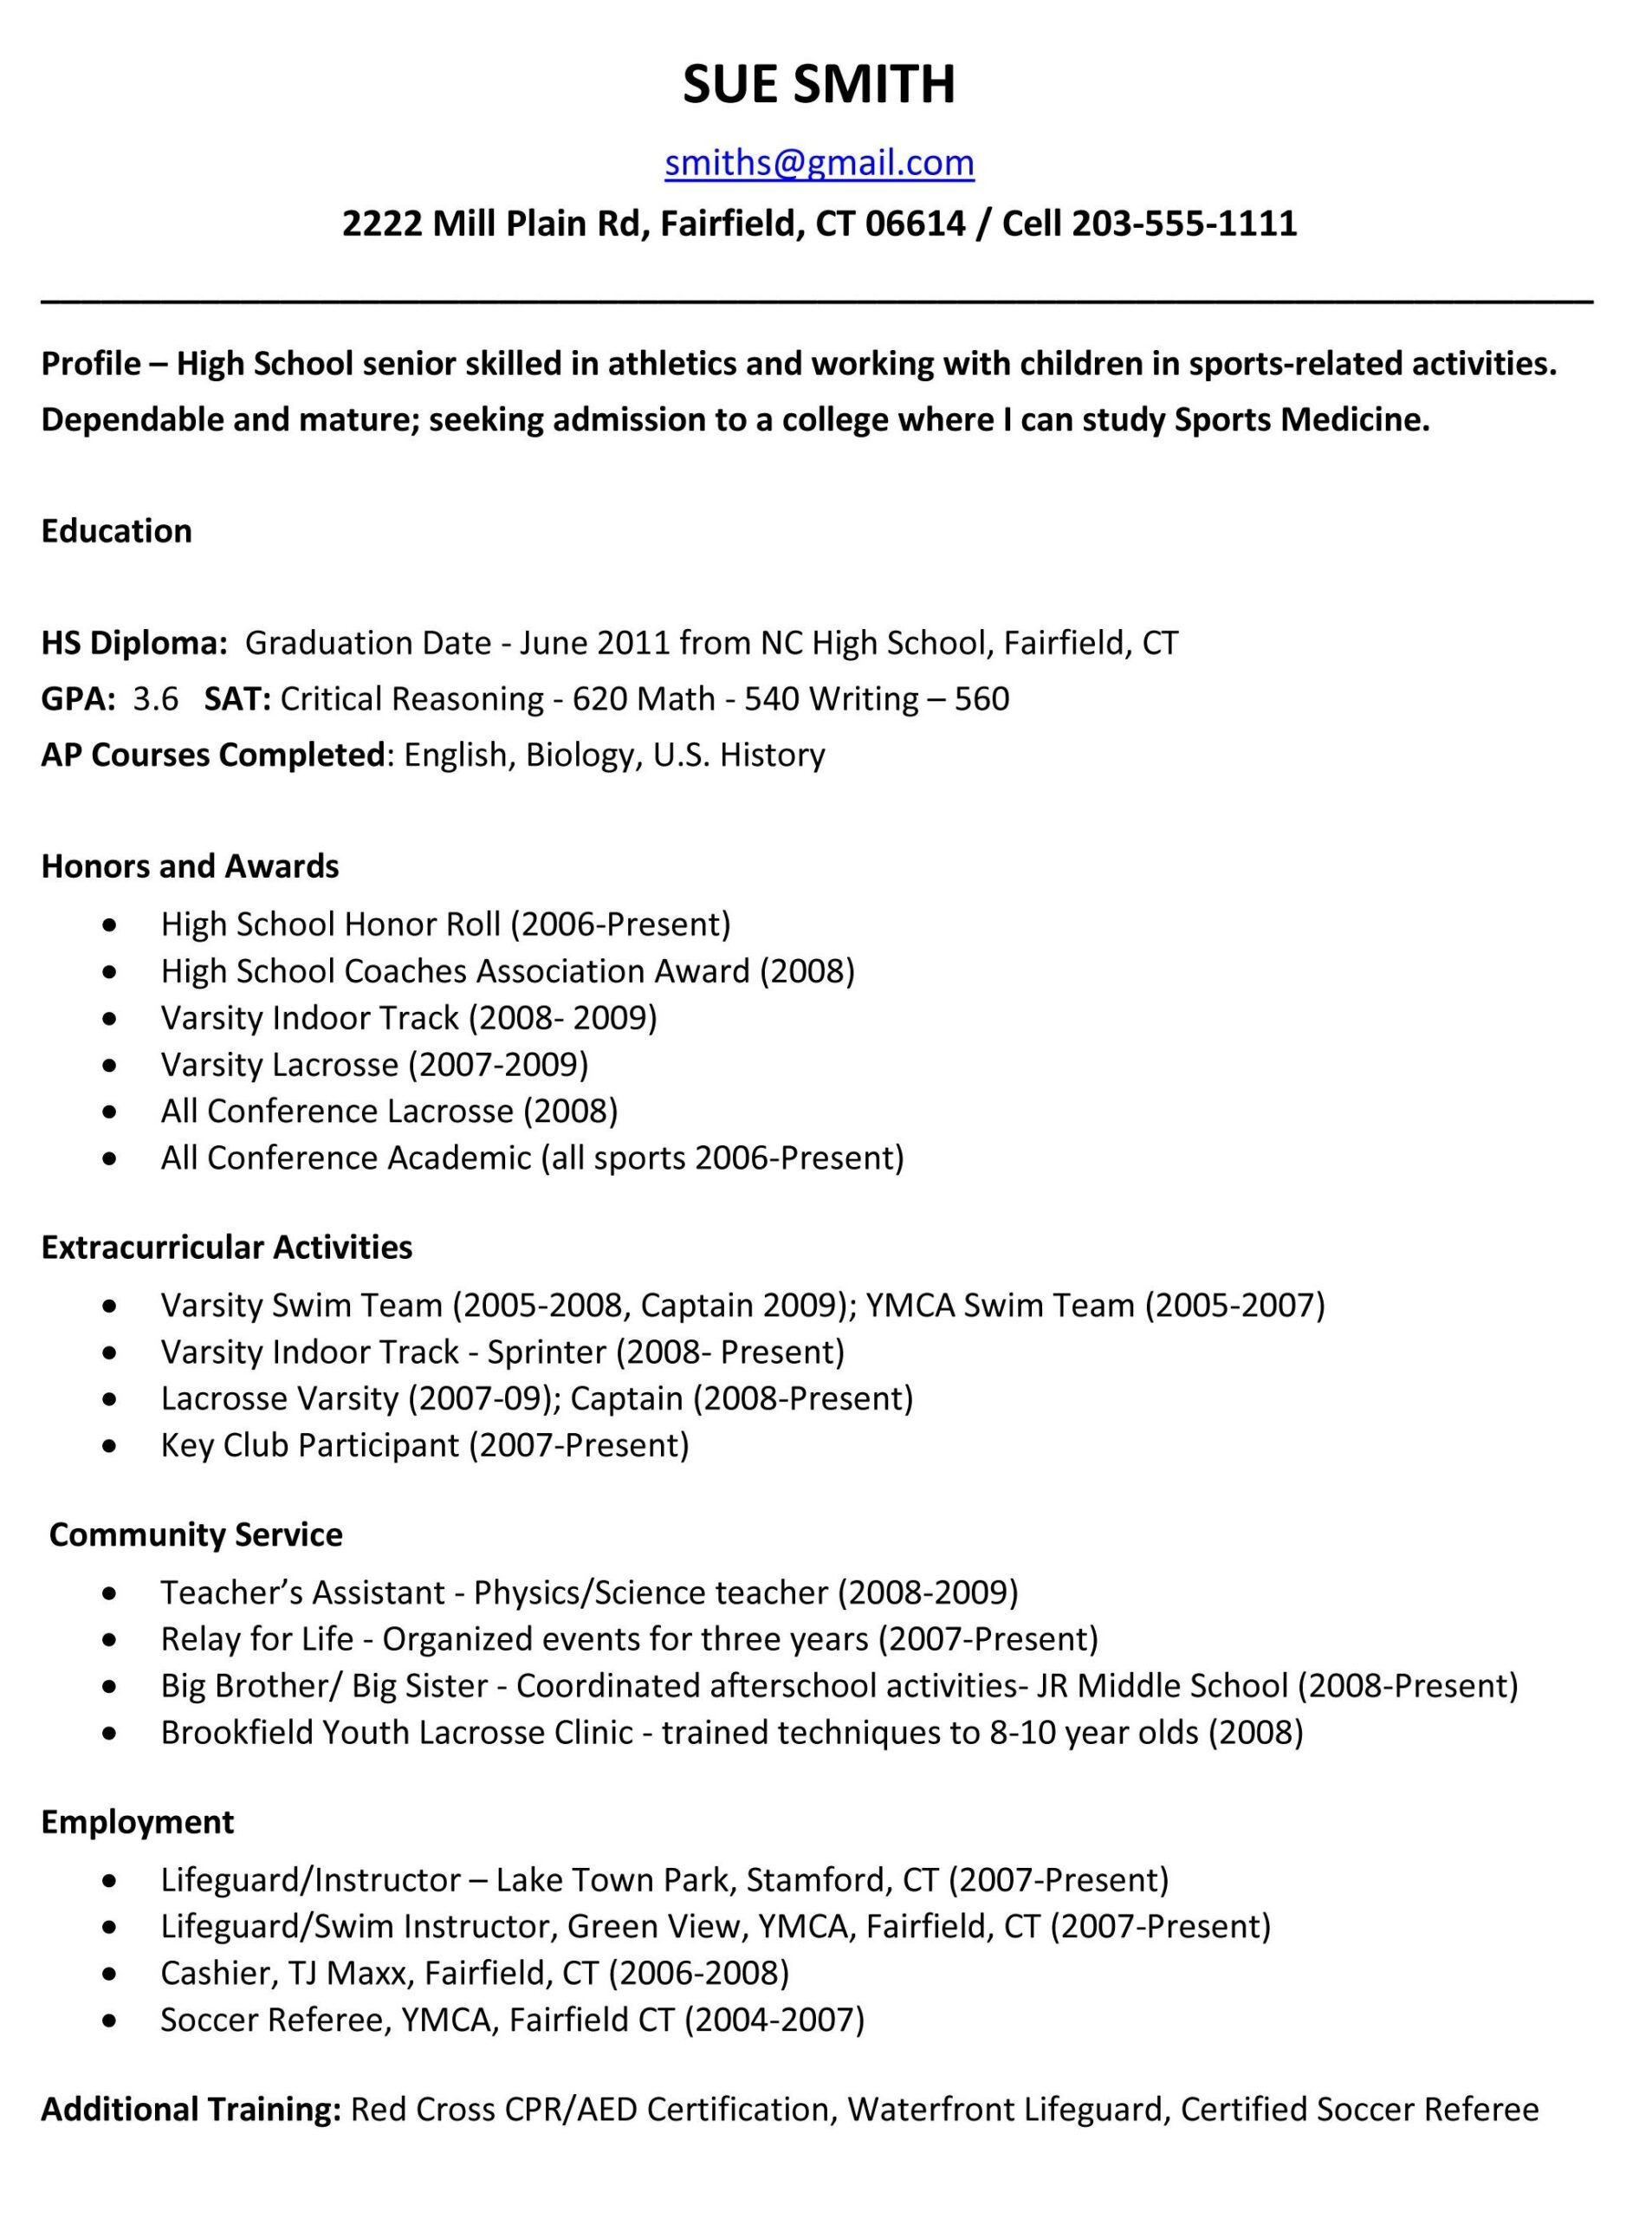 sample resumes high school resume template college application for student applying job Resume Sample Resume For High School Student Applying For A Job